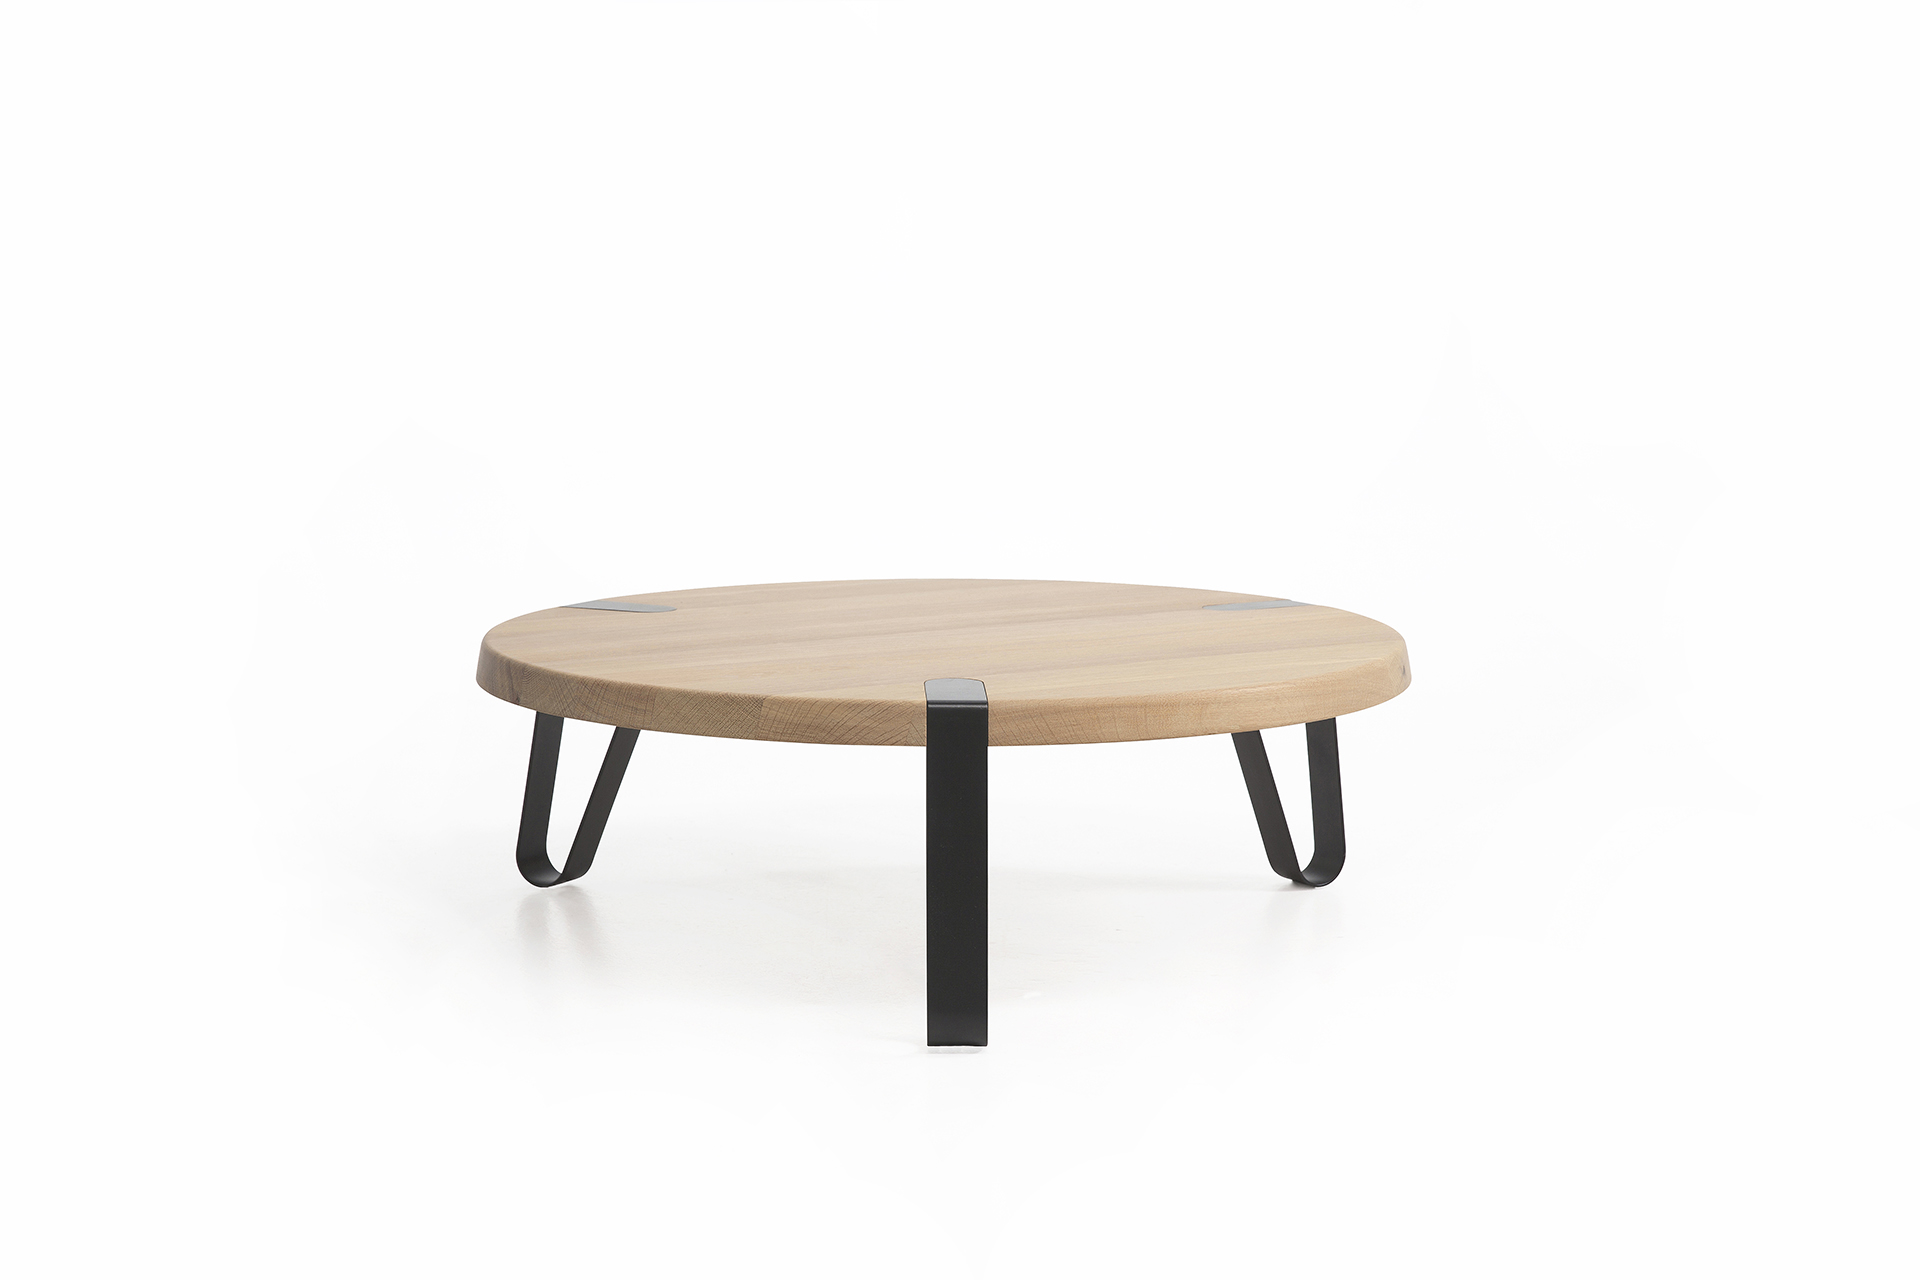 Salon Tafel Hout Rond.Level Rond Design Salontafel L Erik Remmers L Odesi Your Dutch Design